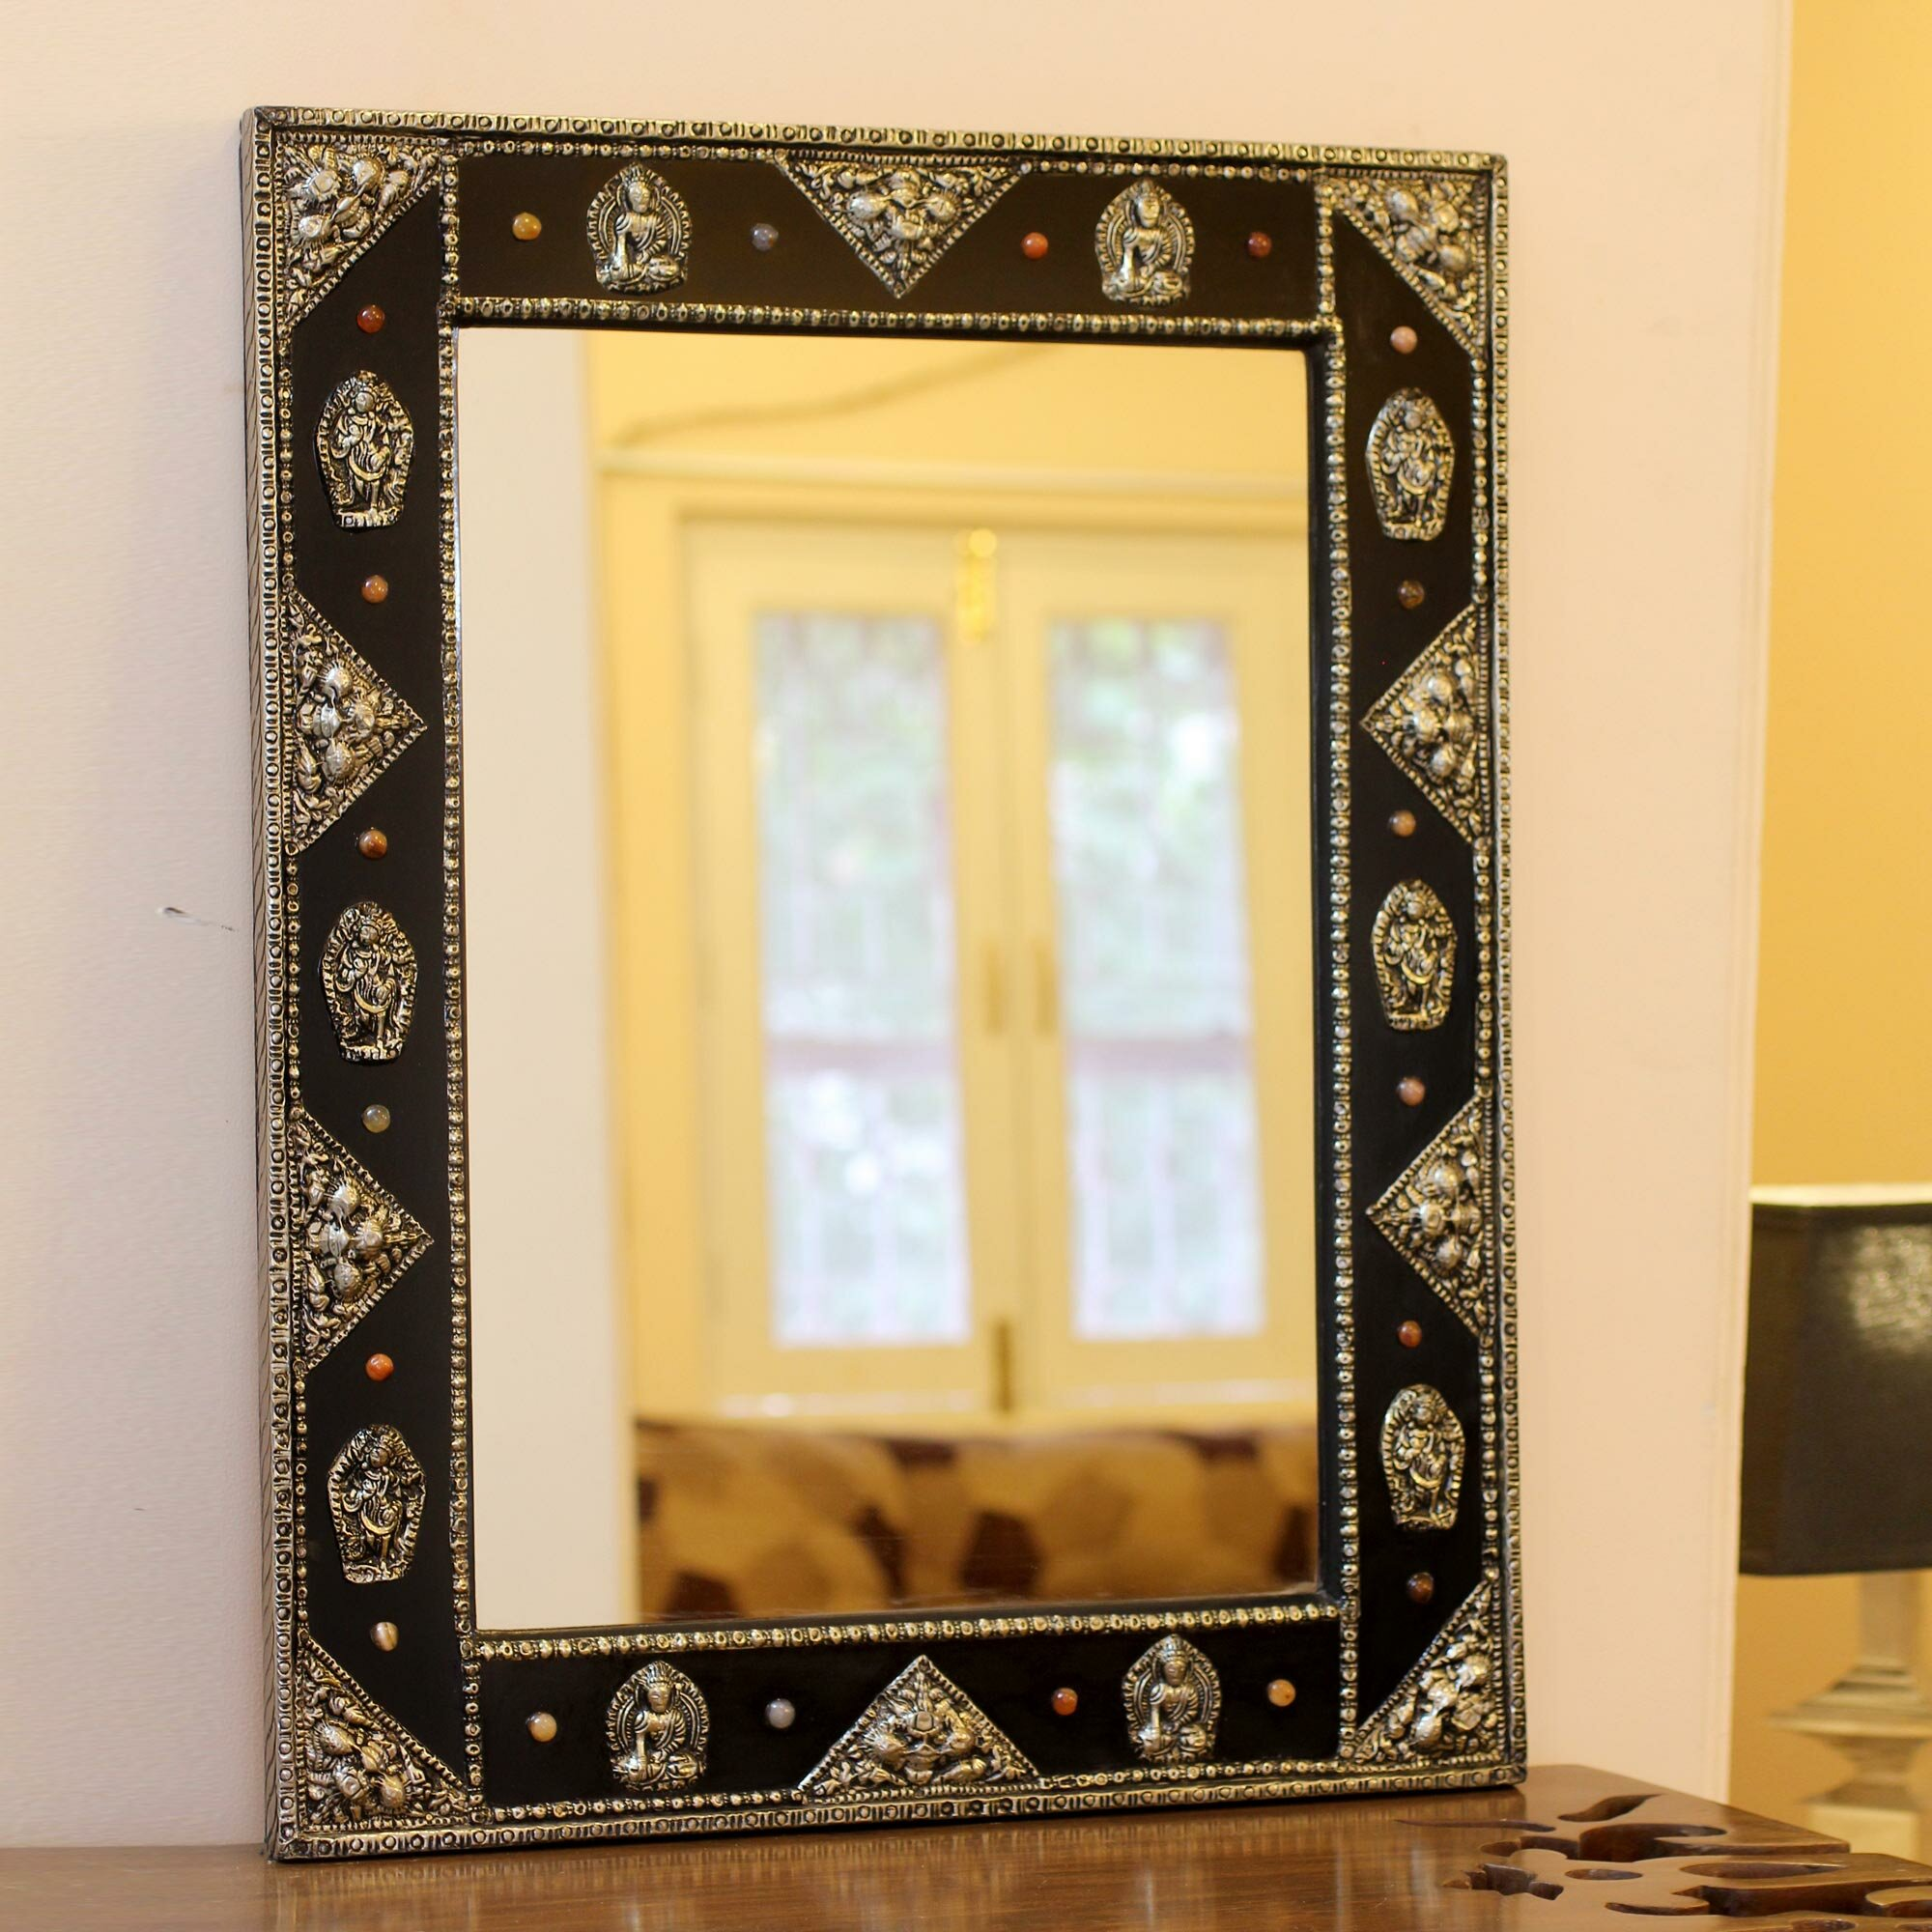 Novica Tranquility Hand crafted Brass on Wood Wall Mirror | Wayfair